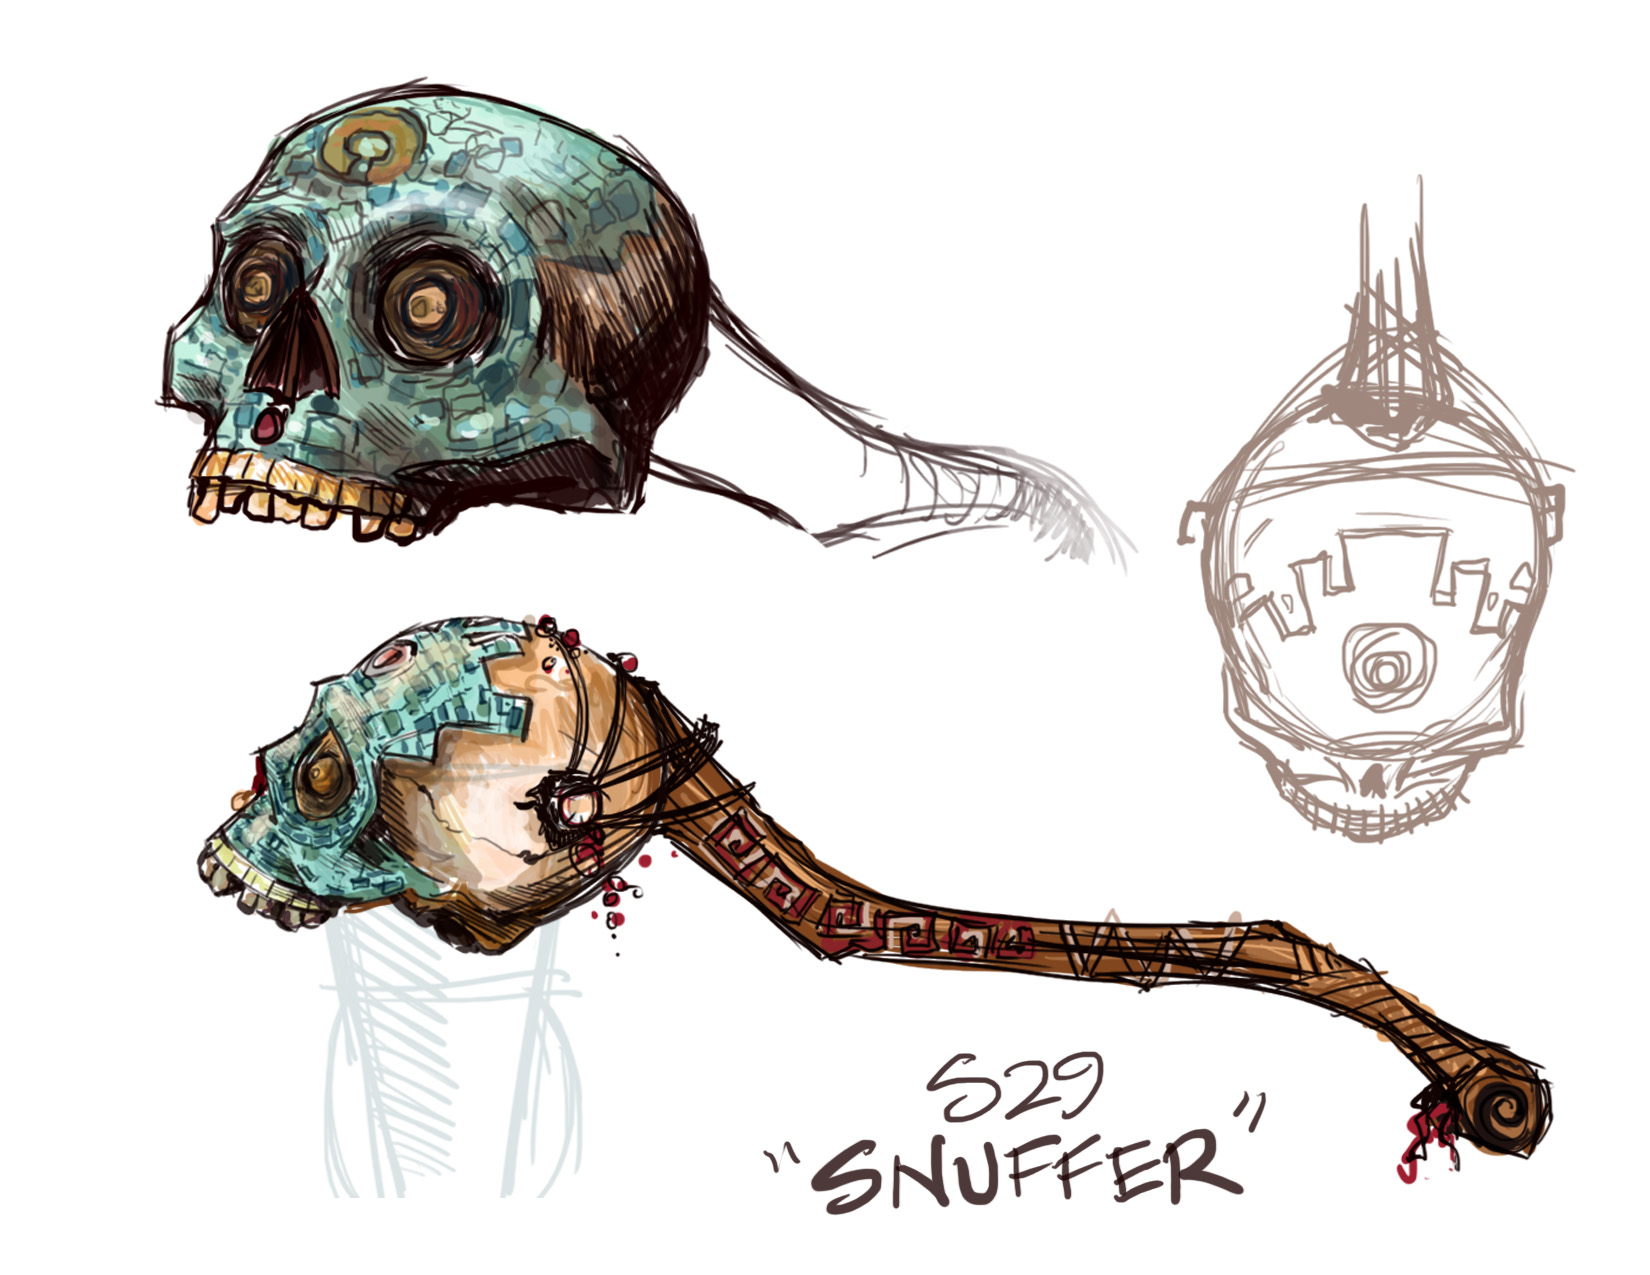 Season 29 Snuffer Blueprint